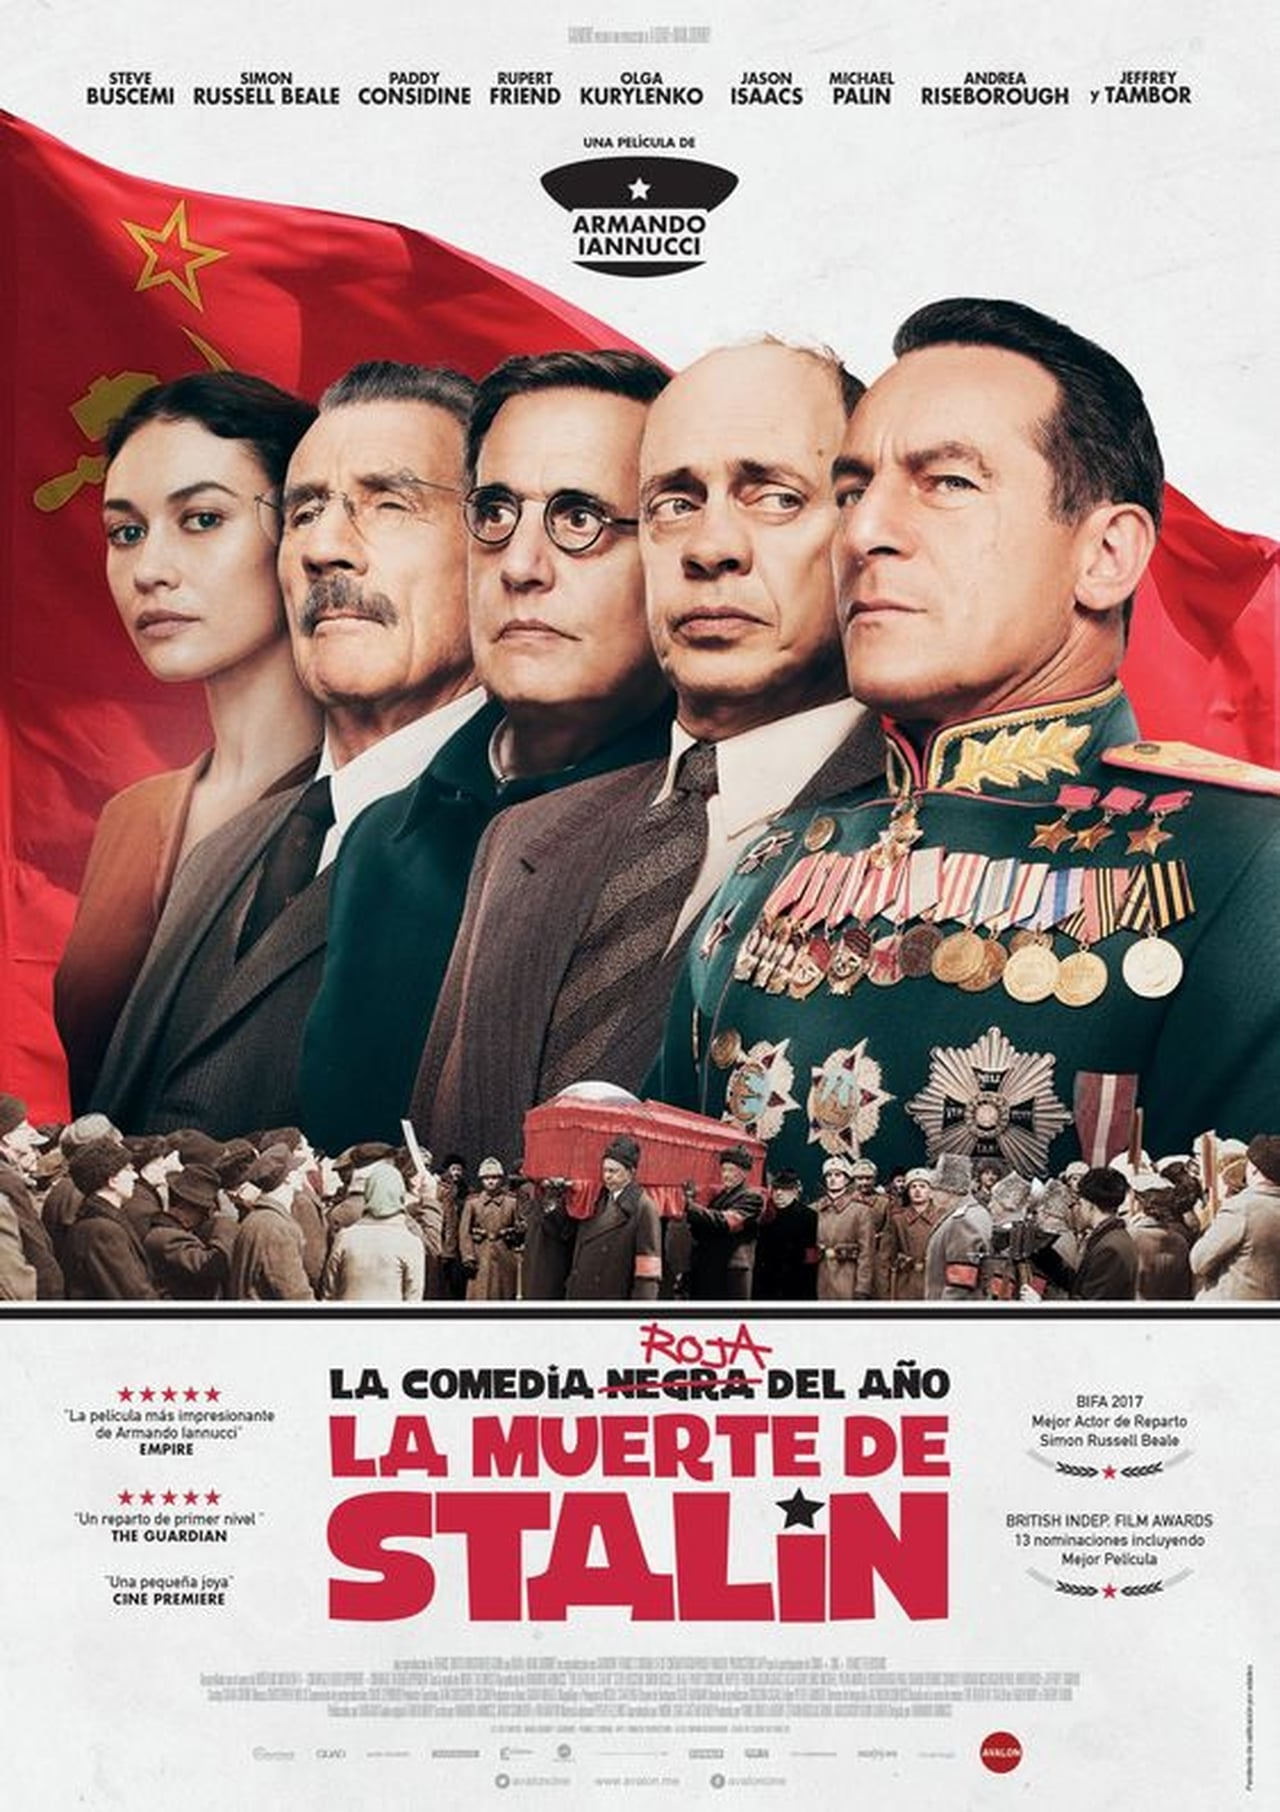 La muerte de Stalin (The Death of Stalin)